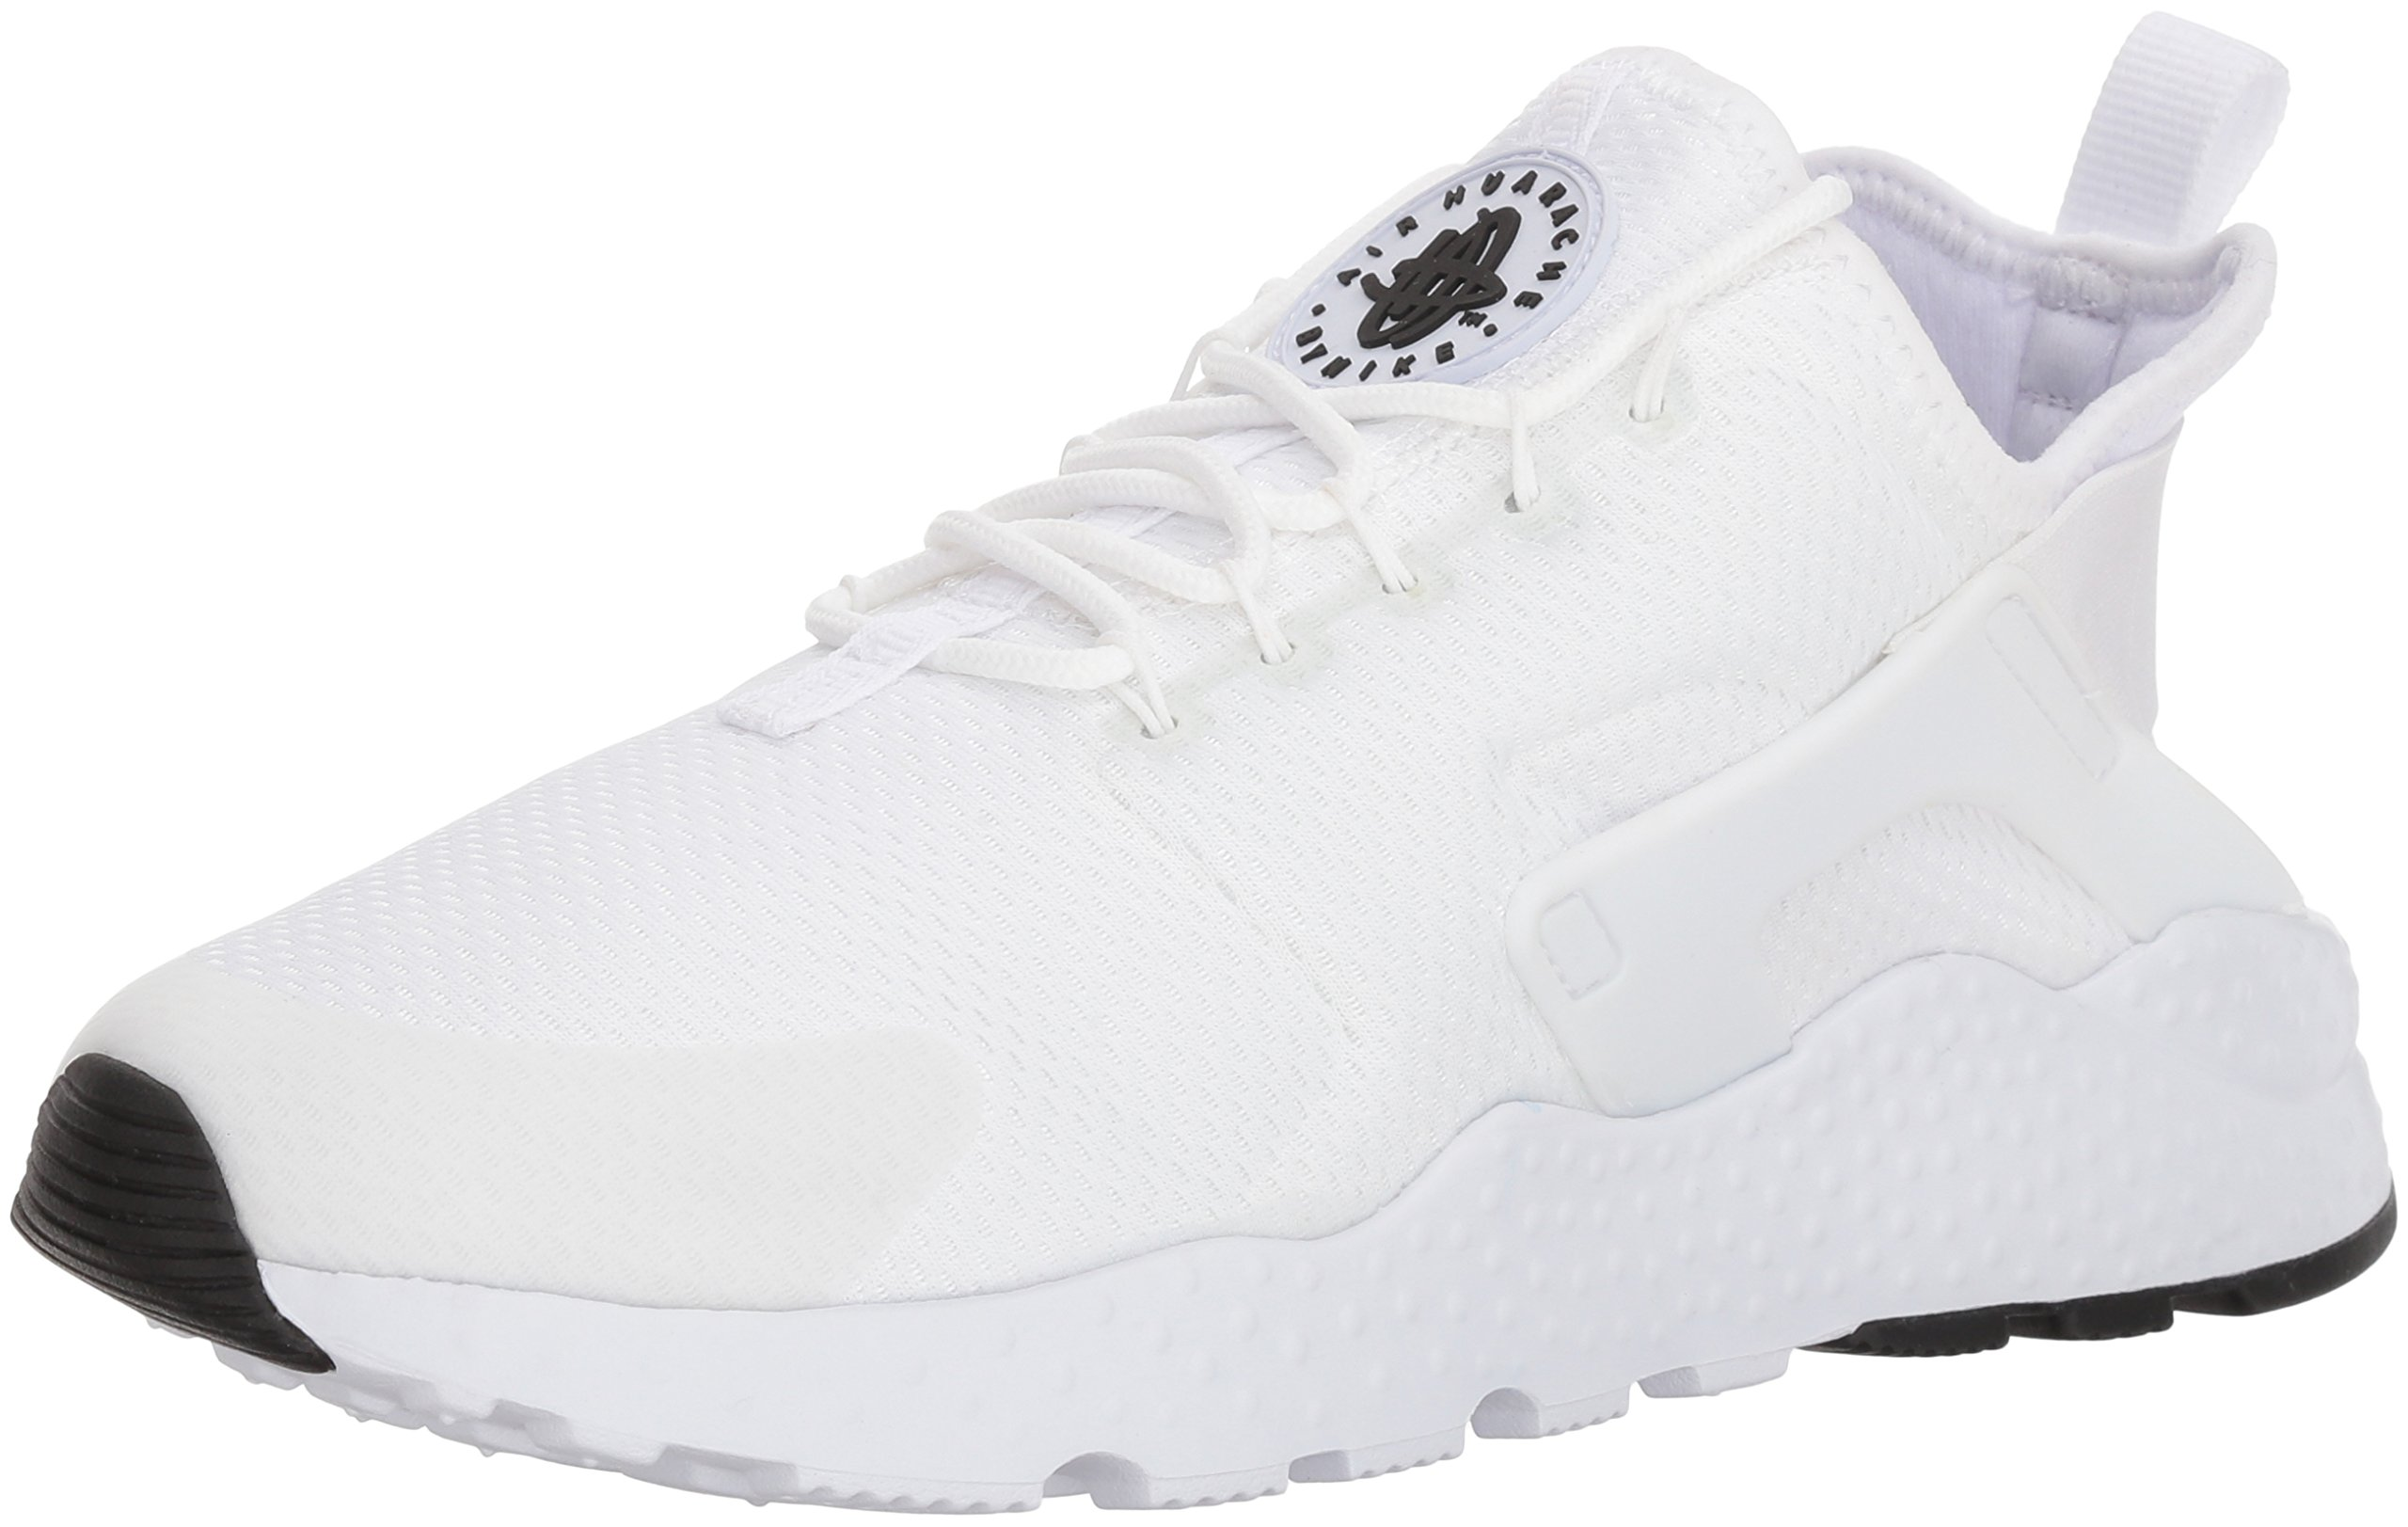 75a2934130cd Galleon - Nike Air Huarache Run Ultra Women s Running Shoes  White White-White-Black 819151-102 (9 B(M) US)